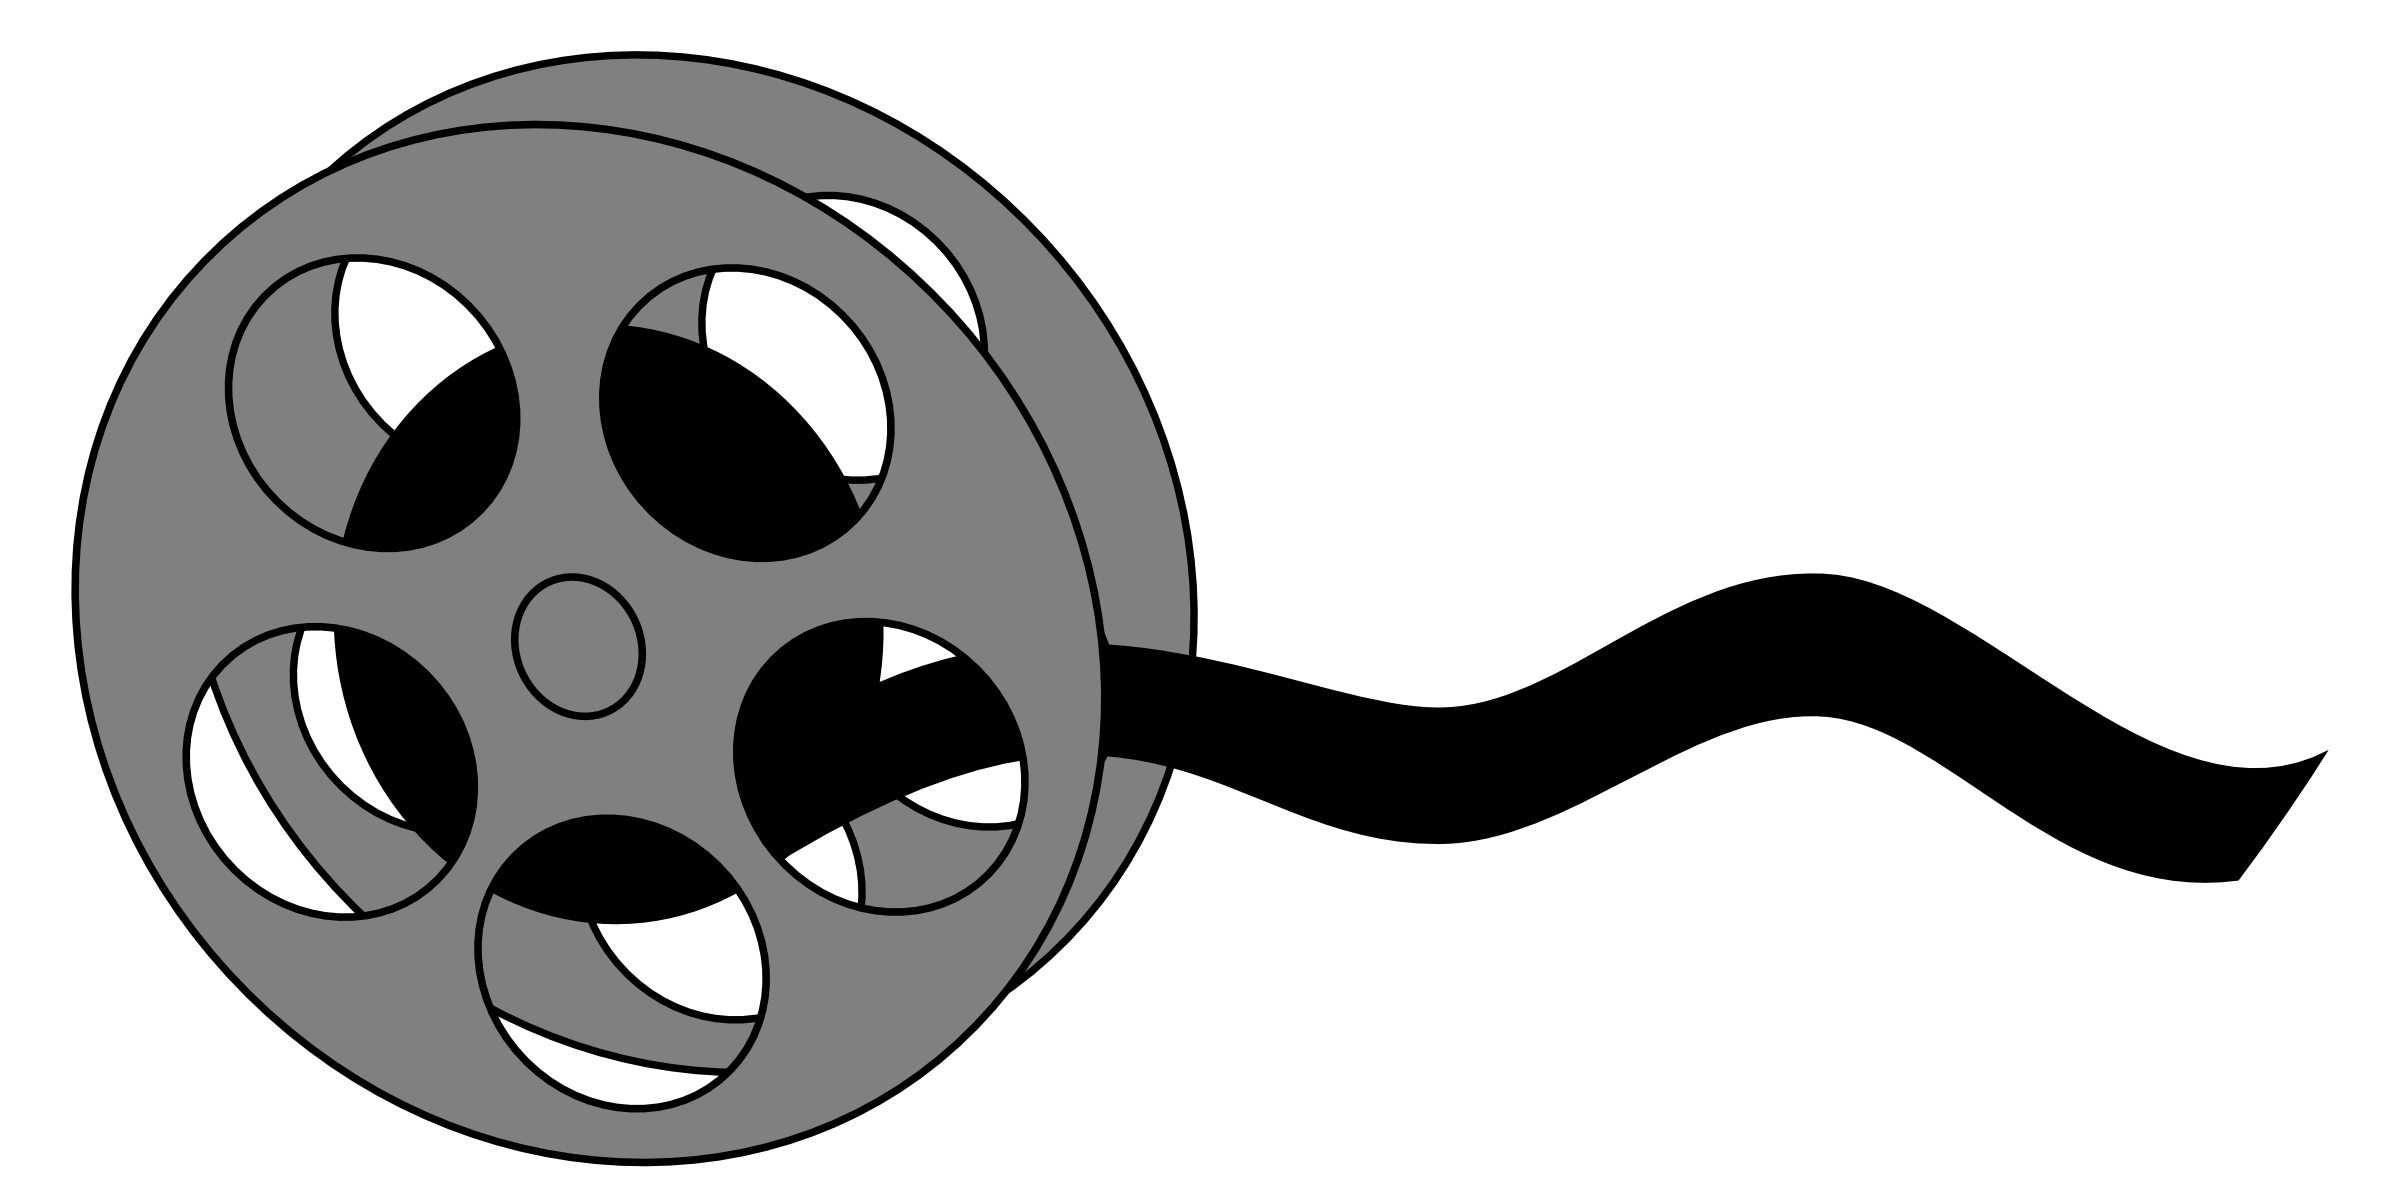 Movie Film Reel Clipart - ClipArt Best